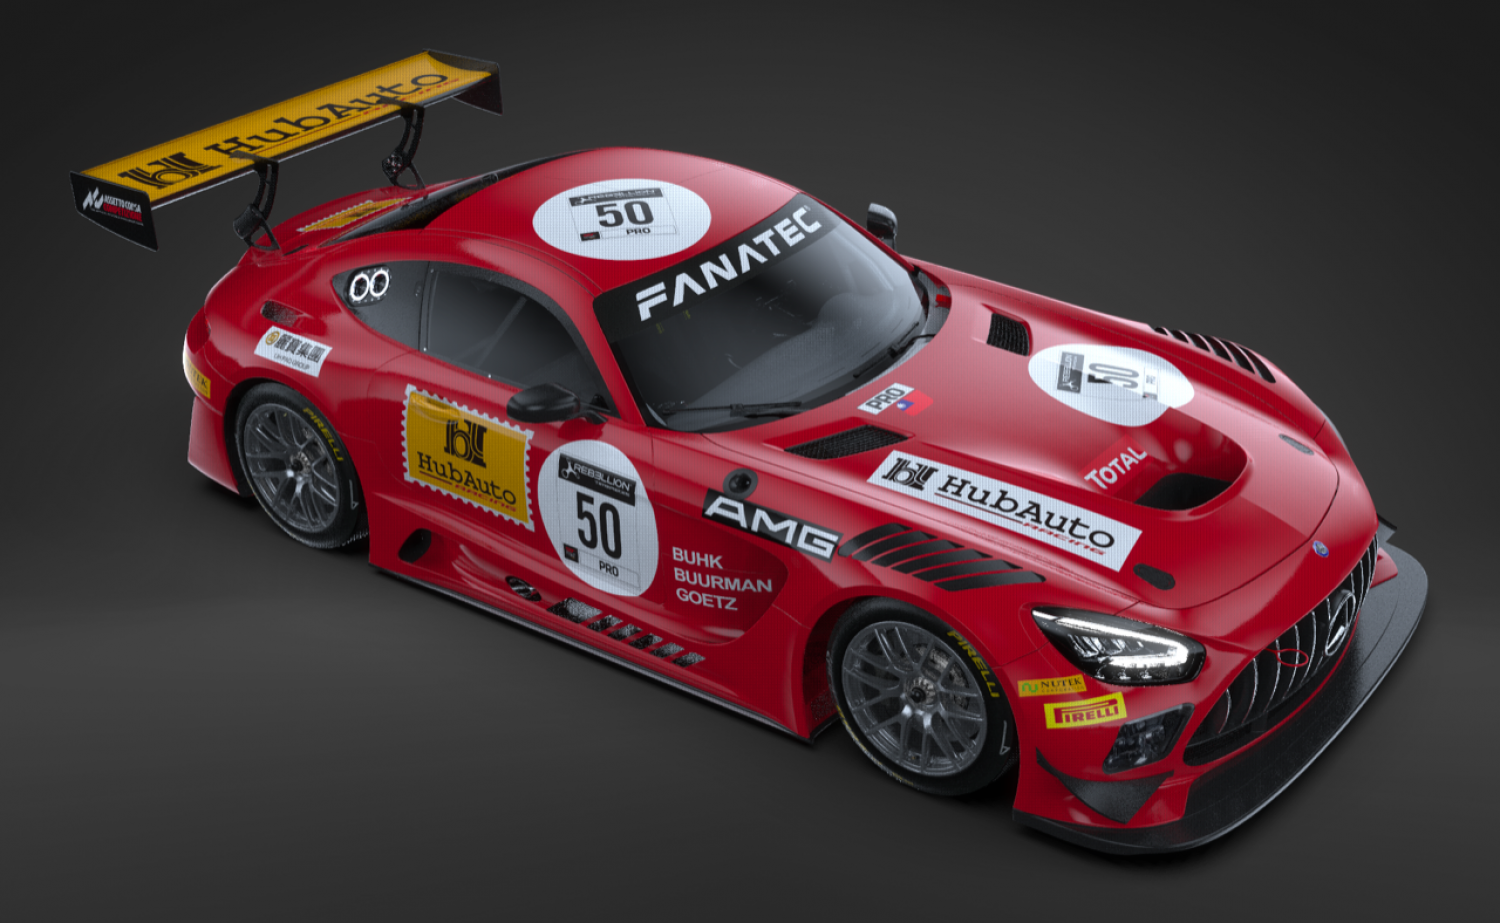 """HubAuto Racing to enter the TotalEnergies 24 Hours of Spa with """"The Legend of Spa"""" 50th Anniversary Livery"""